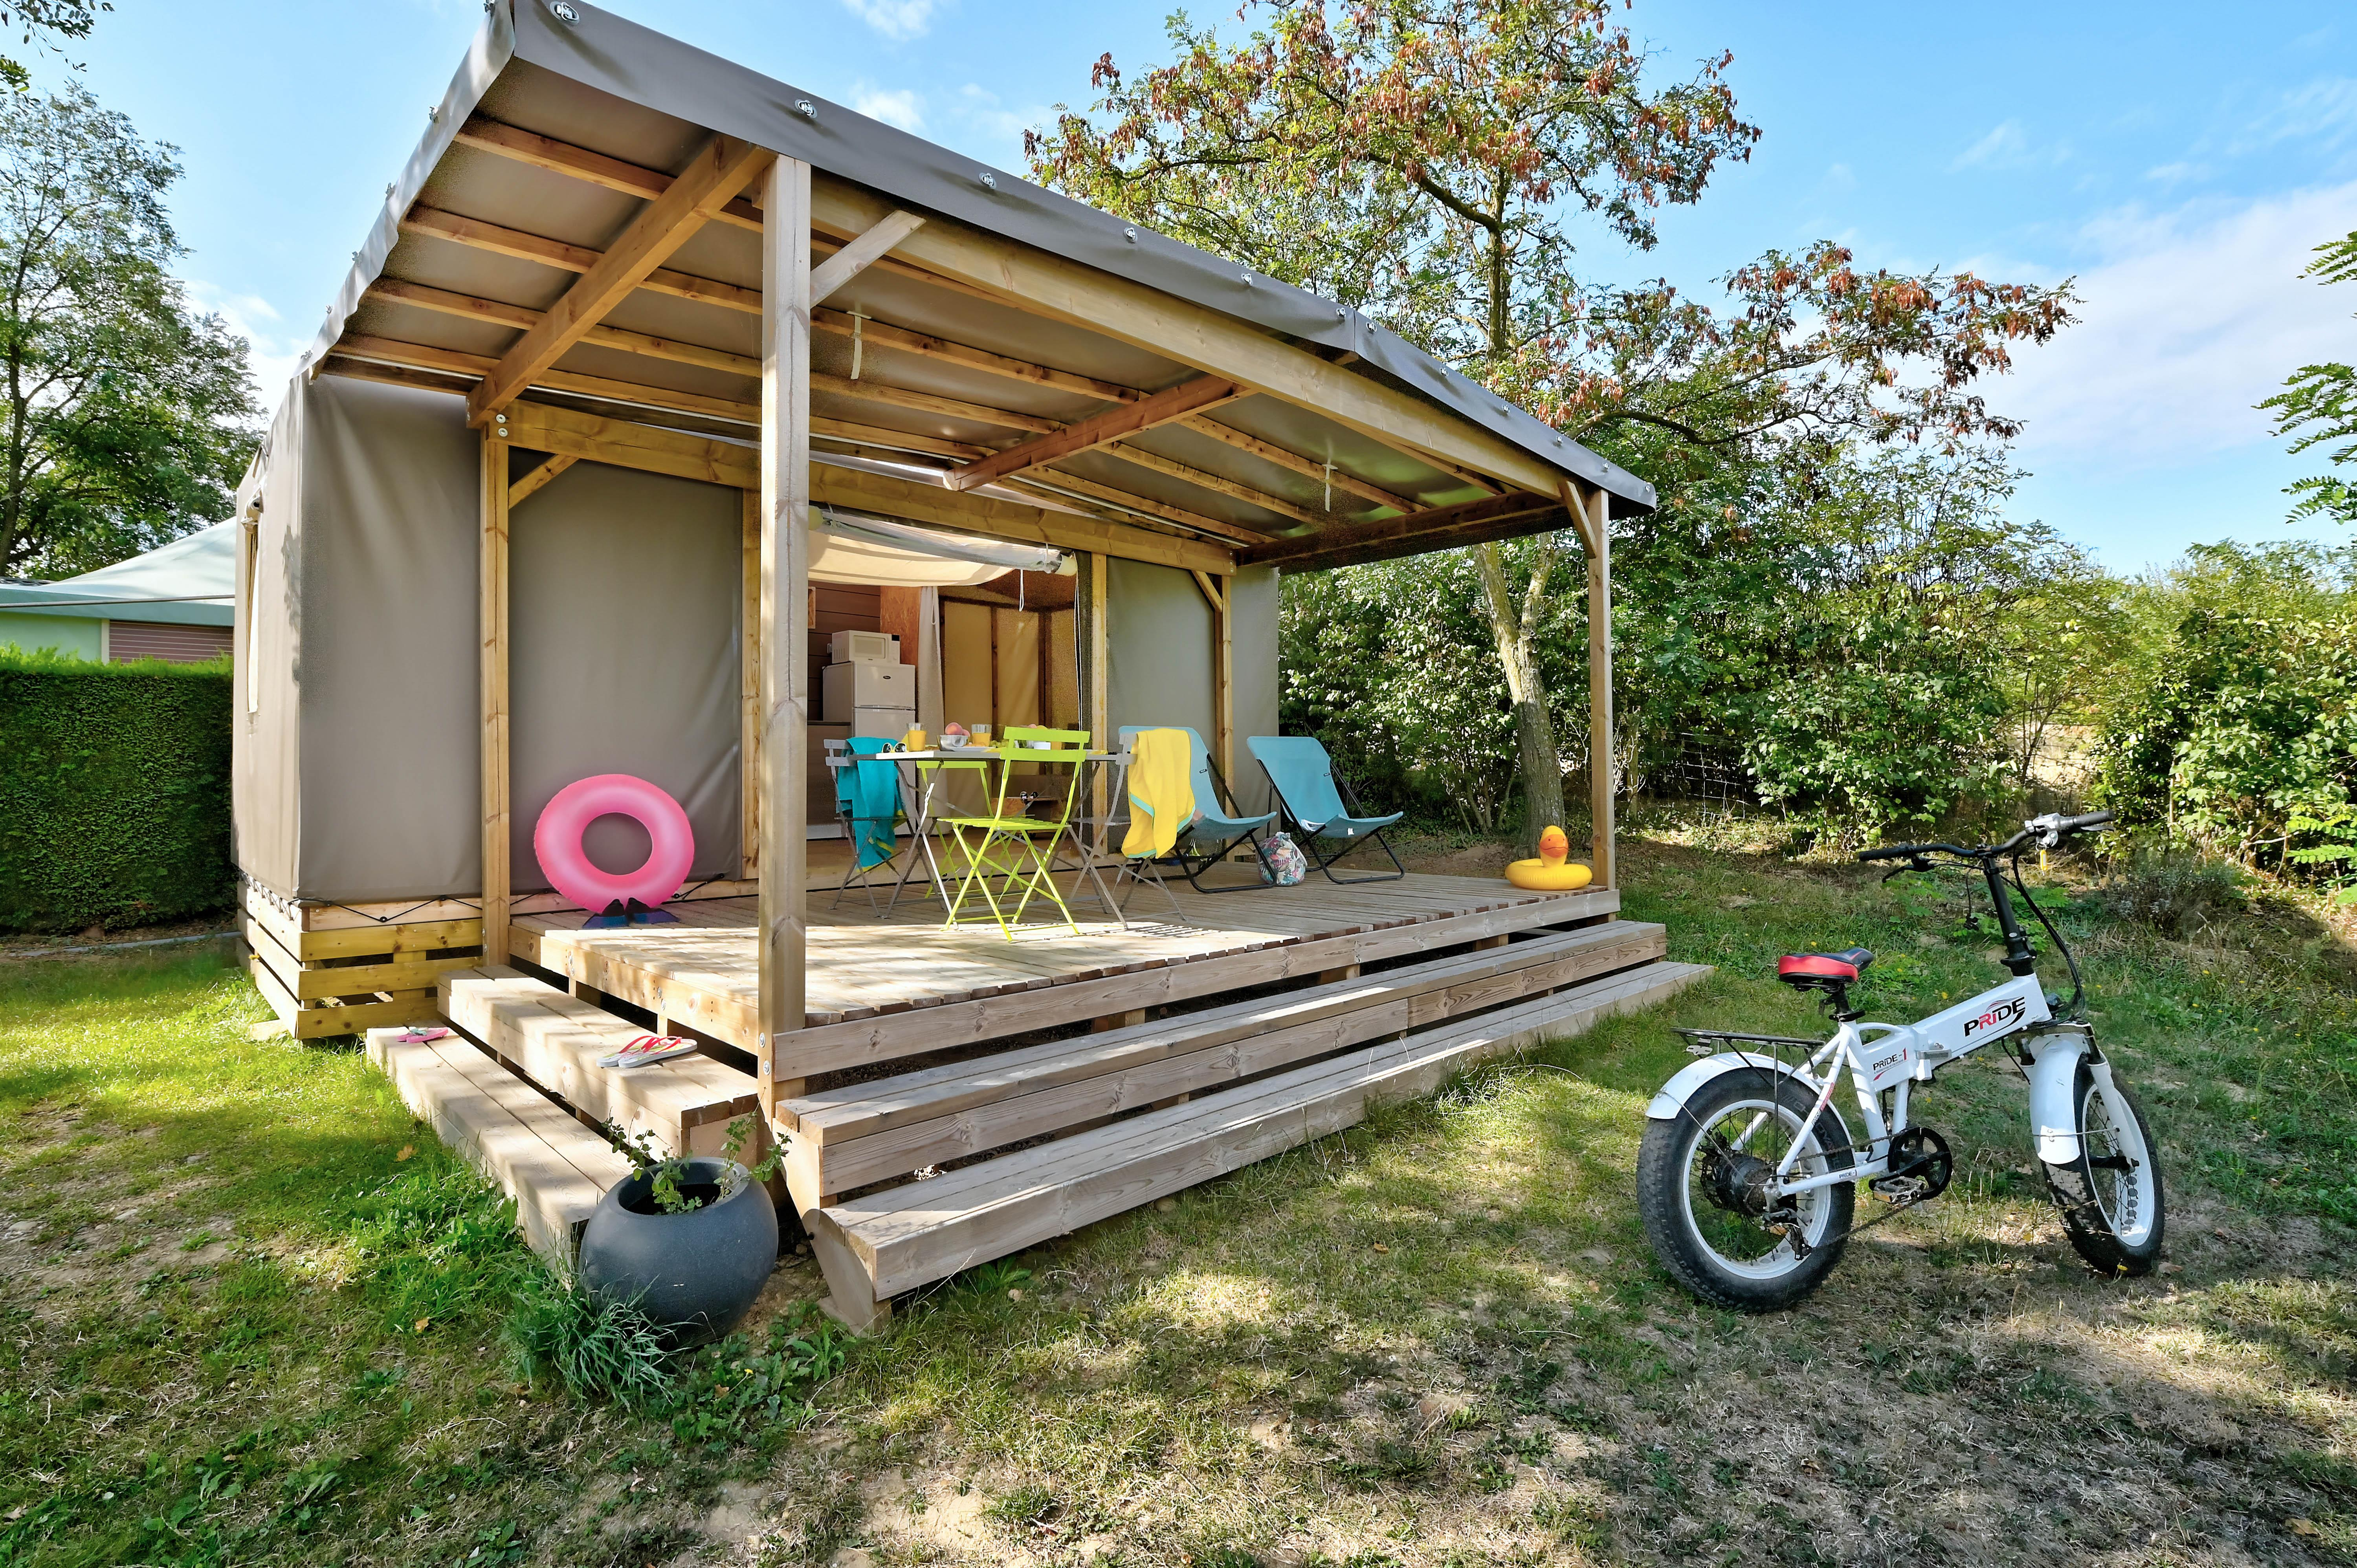 Accommodation - Bengalow Toilé Bois Maori 17 M2 2/4 Pers - Flower Camping La Chataigneraie